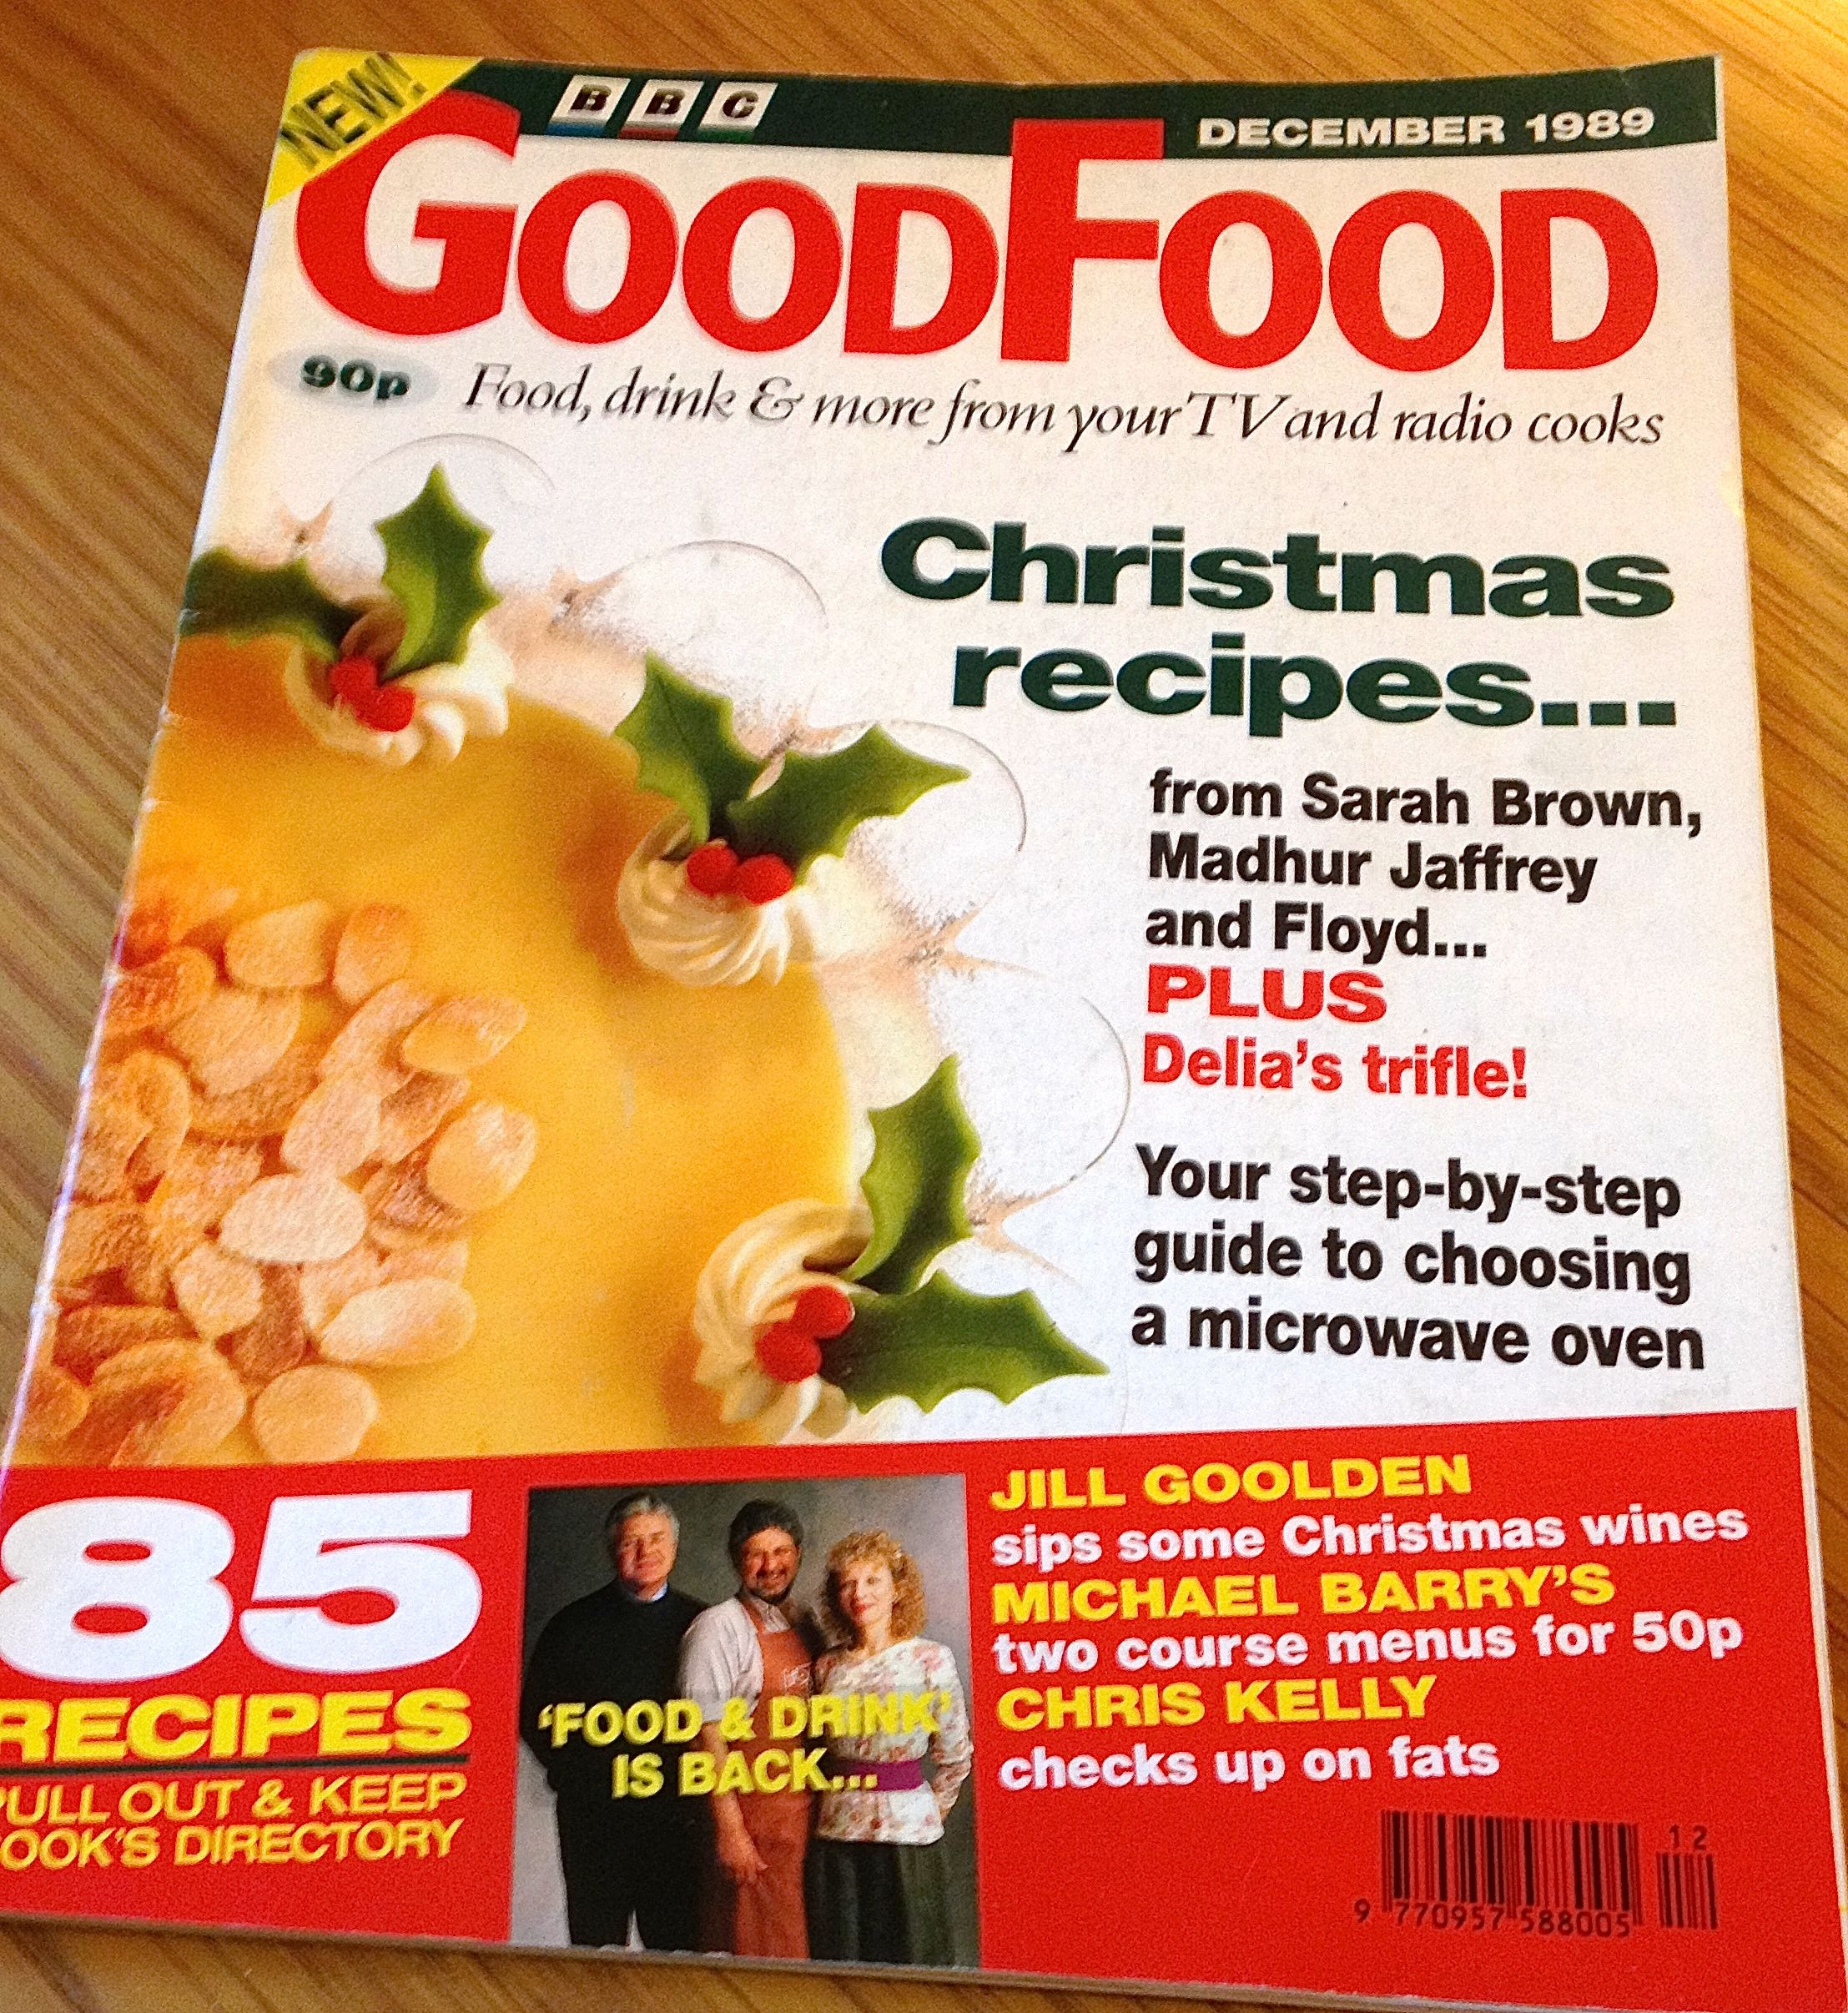 BBC Good Food Magazine December 1989 Front Cover